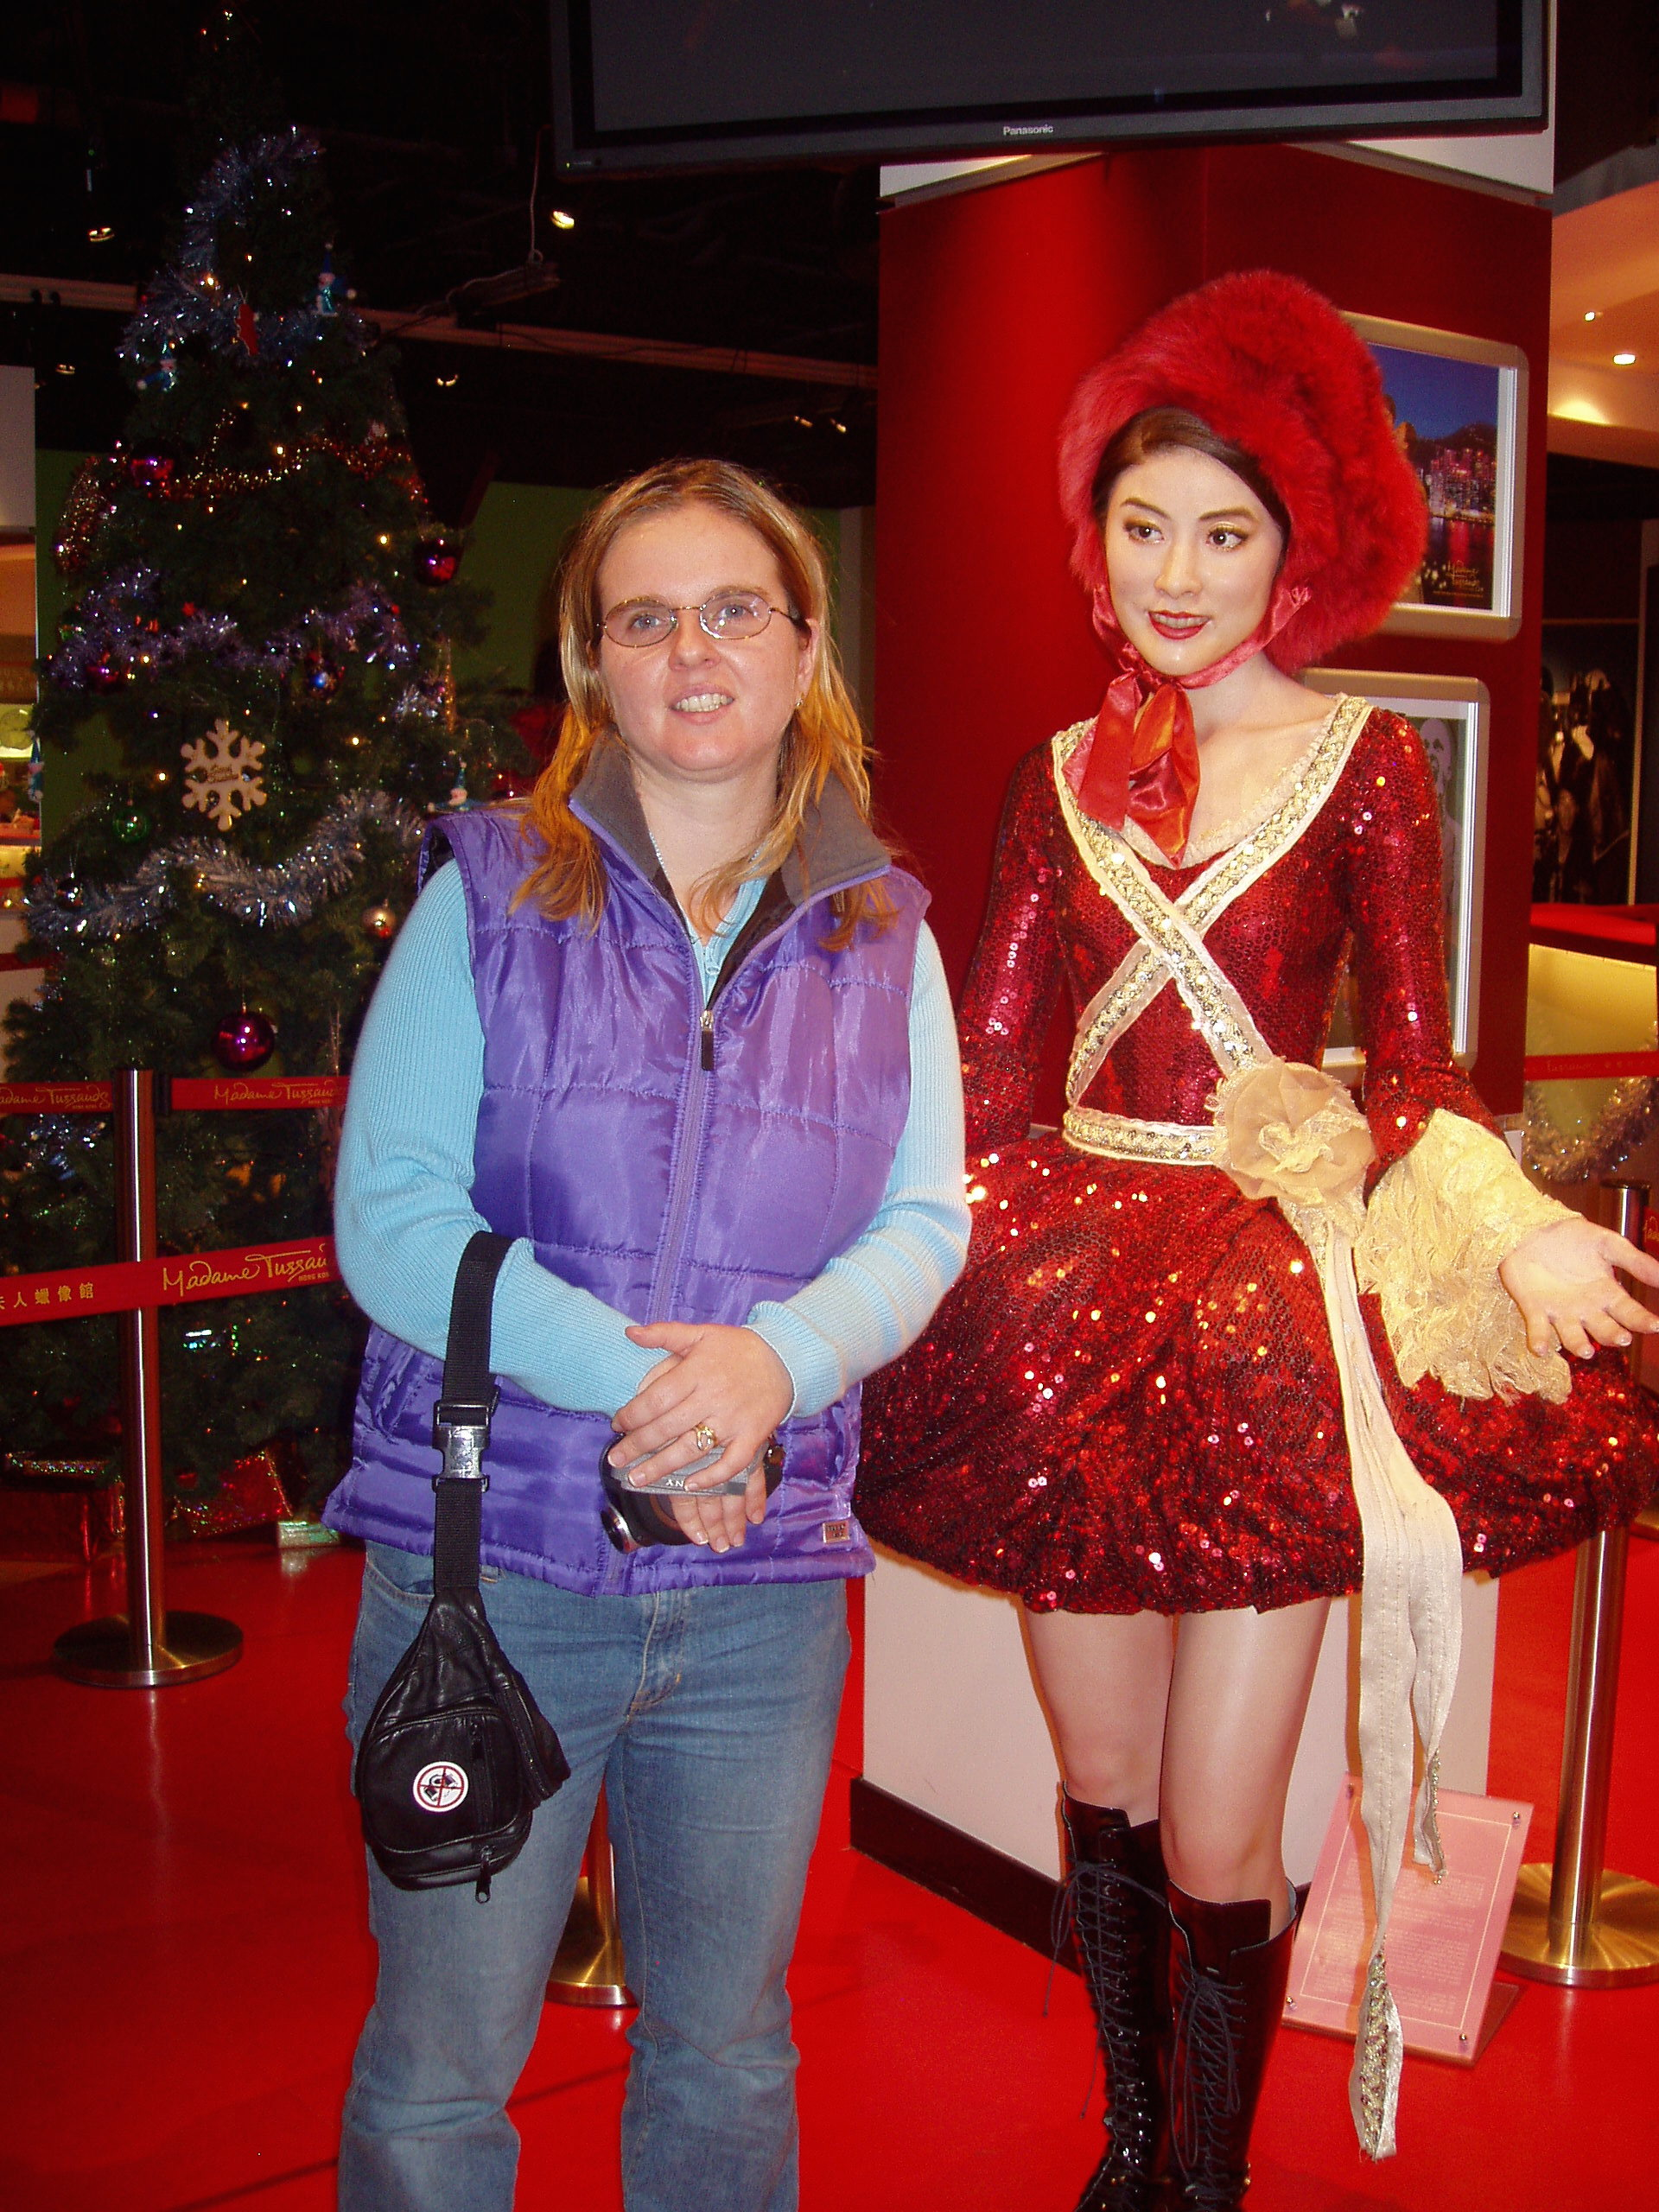 a wax figurine at the entrance of a casino in Macao; December 2006